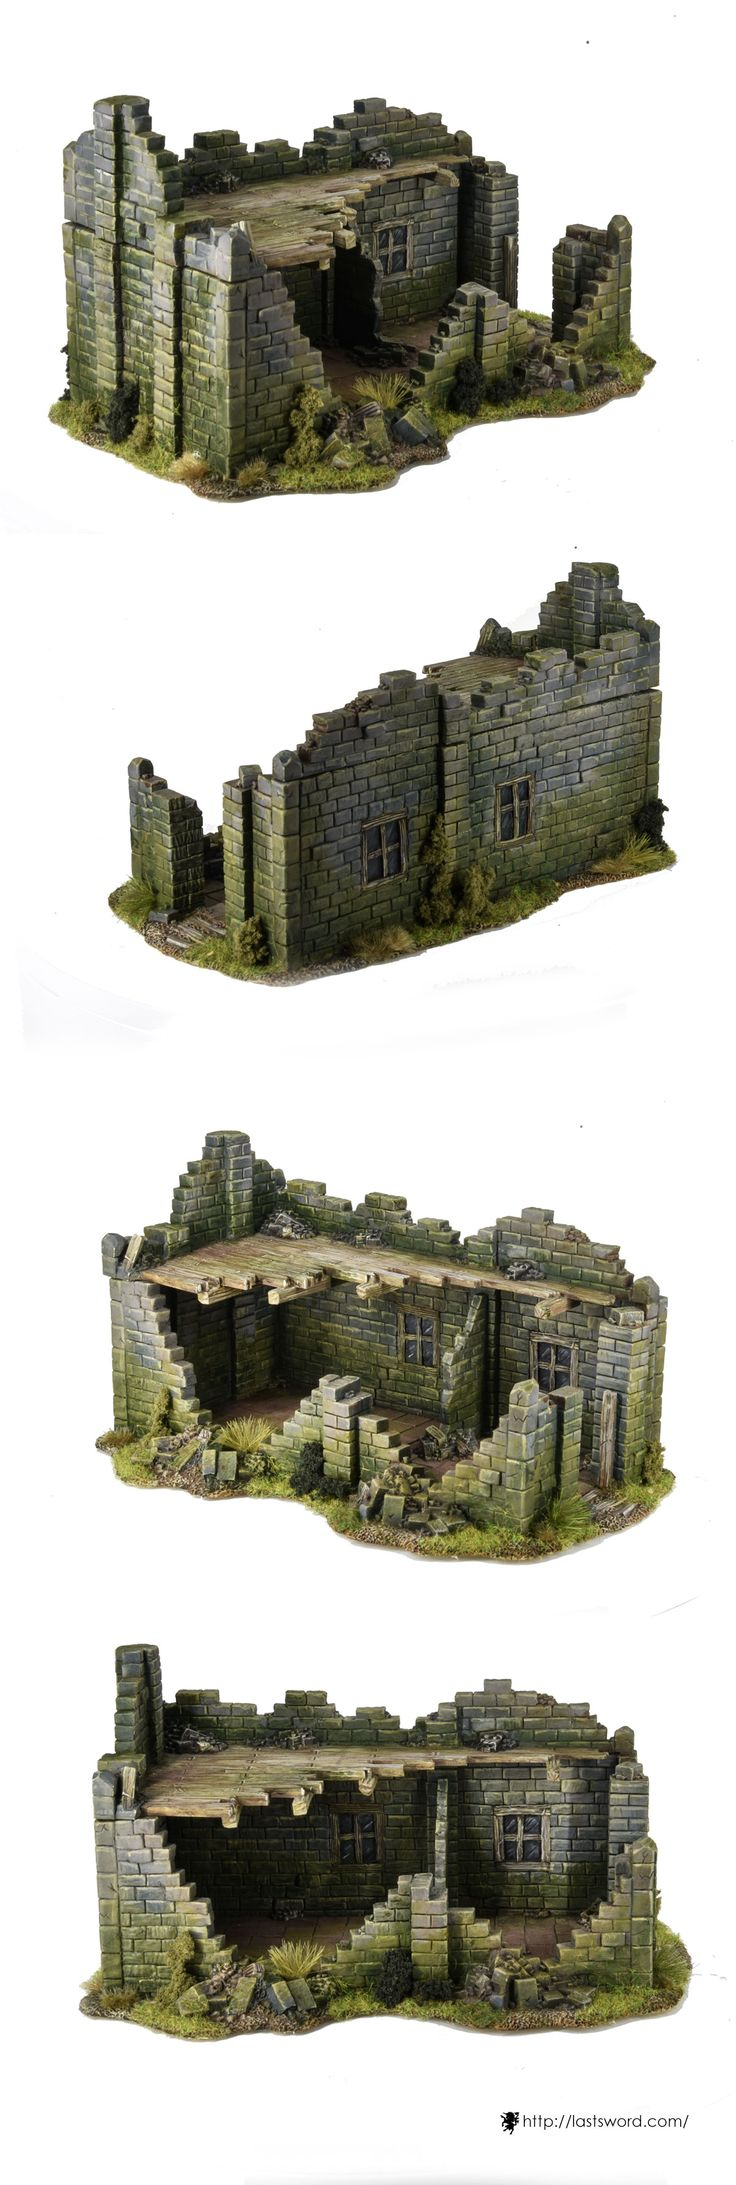 Ruined house for Warhammer fantasy, Mordheim, Age of Sigmar, Kings of war, Frostgrave, and others wargames. Sculpte by Comi, painted by Asdarel.